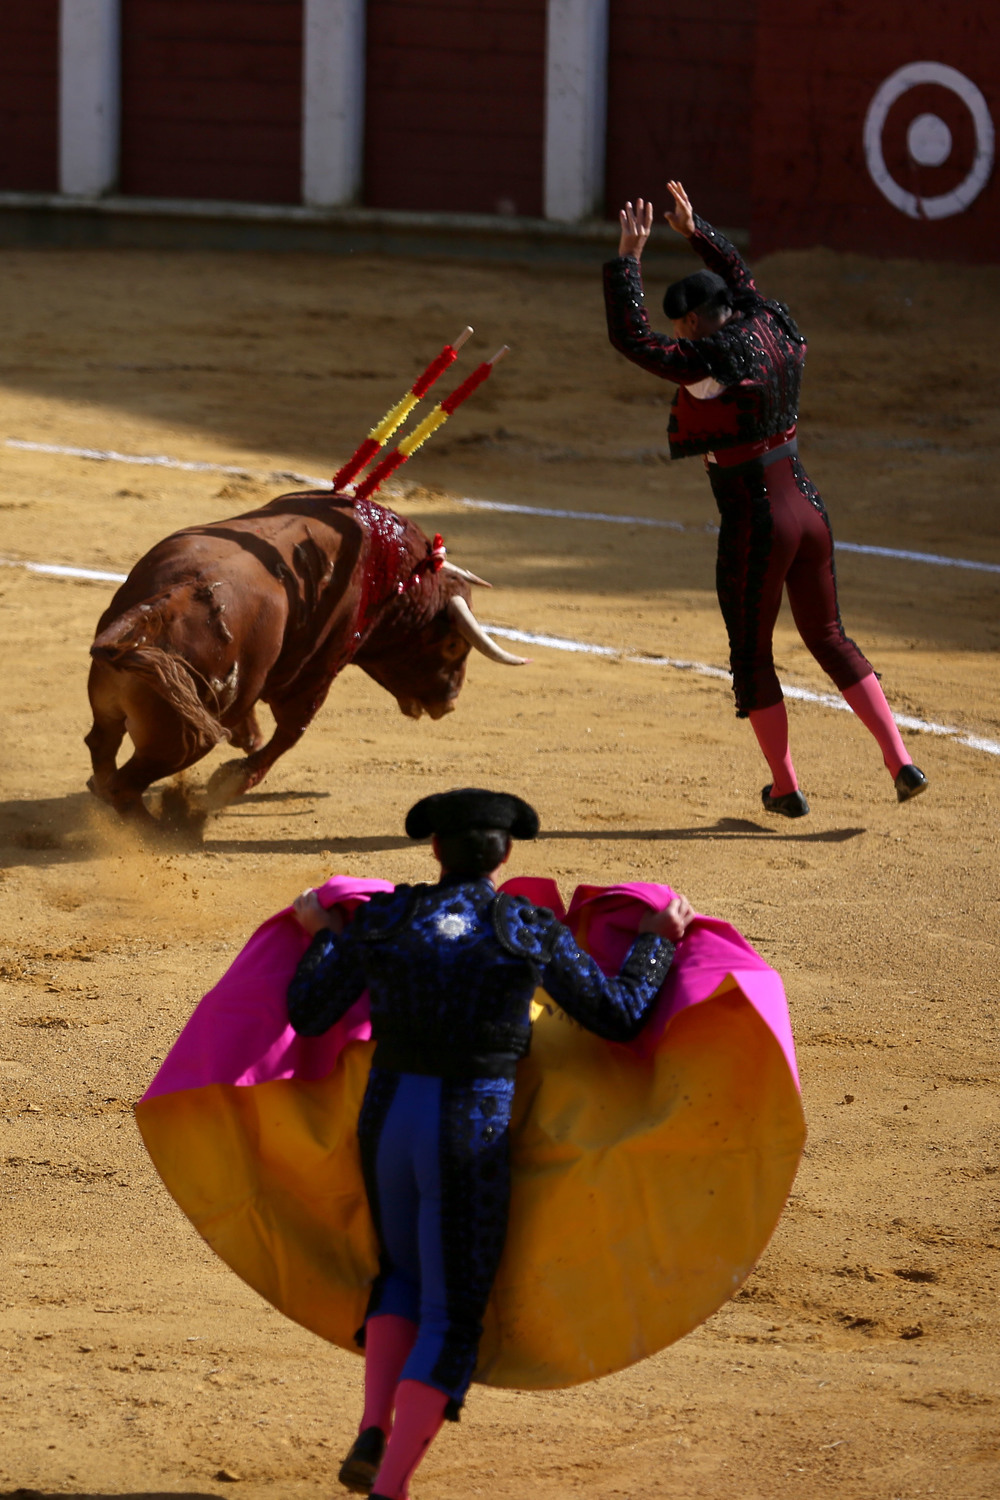 The banderilleros, an integral part of the matador's team, stab the bull with colorful batons during the second part of the modern-styled bullfight.